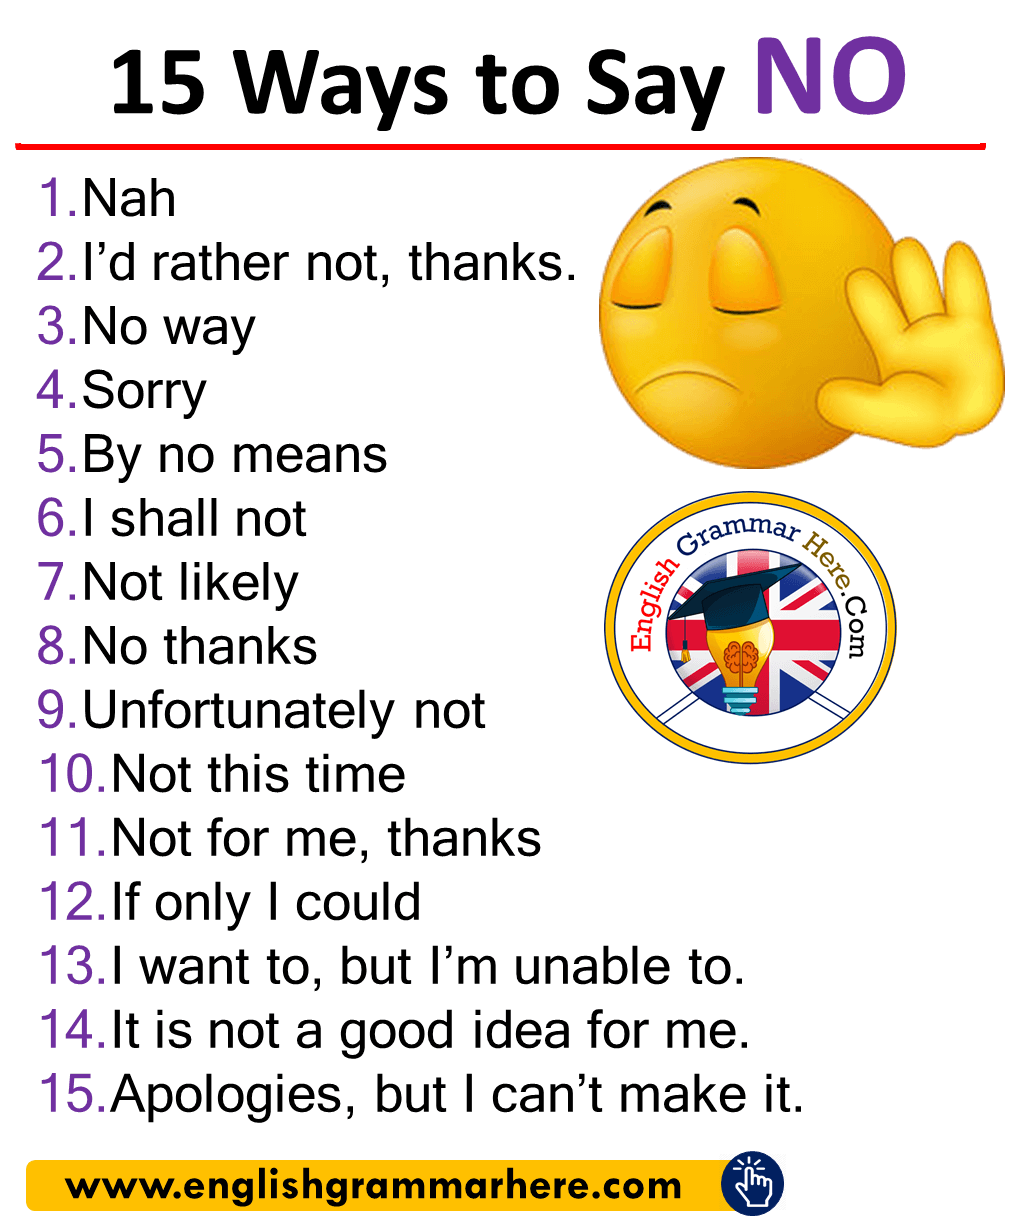 15-Ways-to-Say-NO-in-English.png